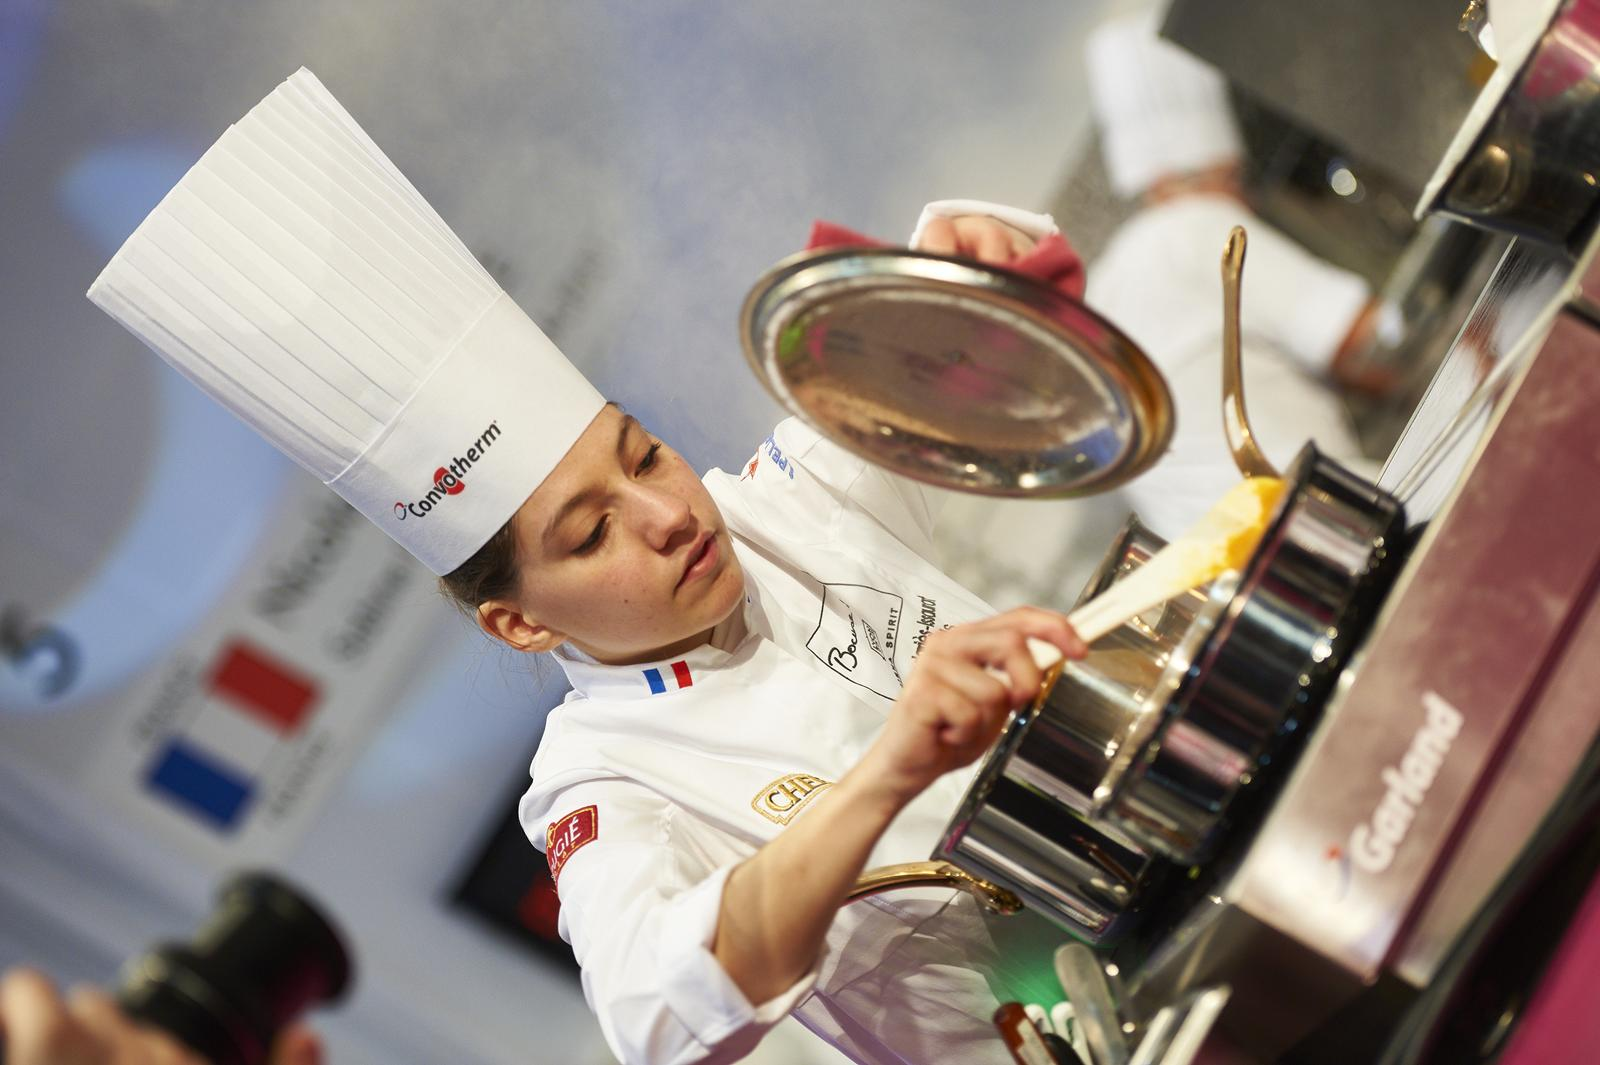 Bocuse-dor-new-zealand-gallery-11